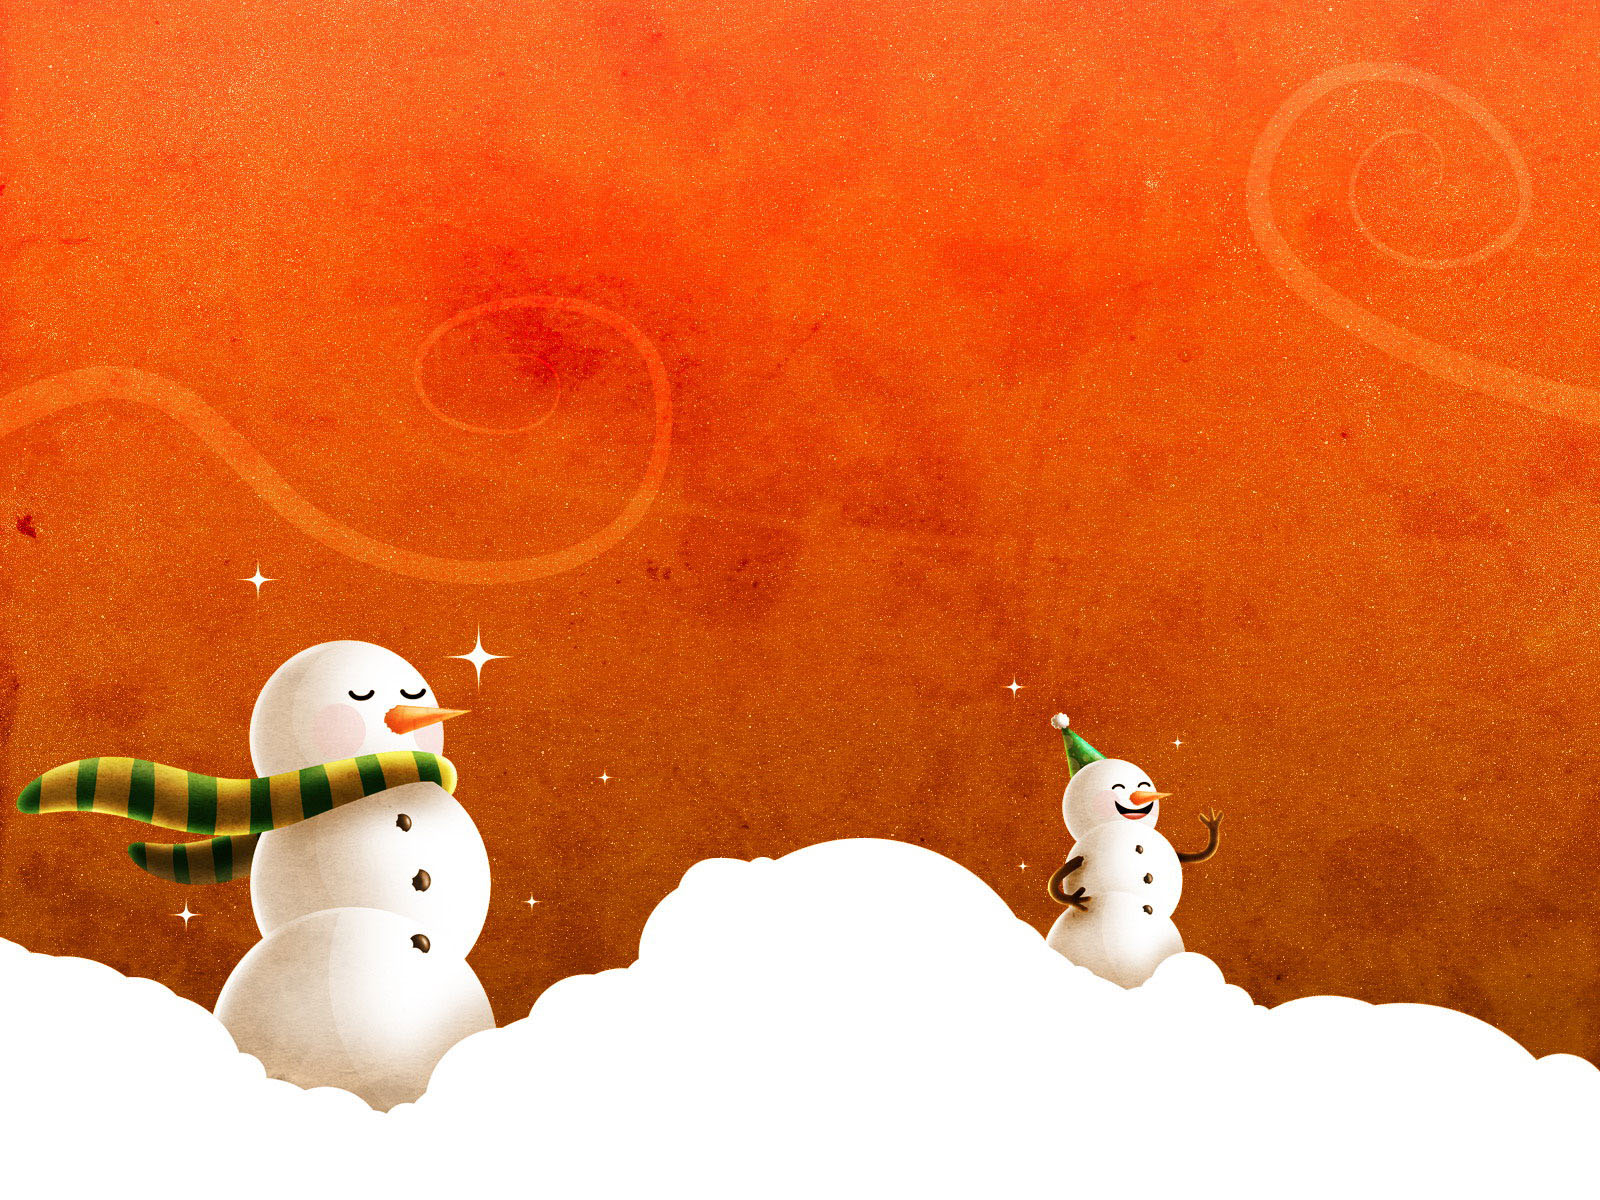 Wallpapers Christmas Snowman Wallpapers